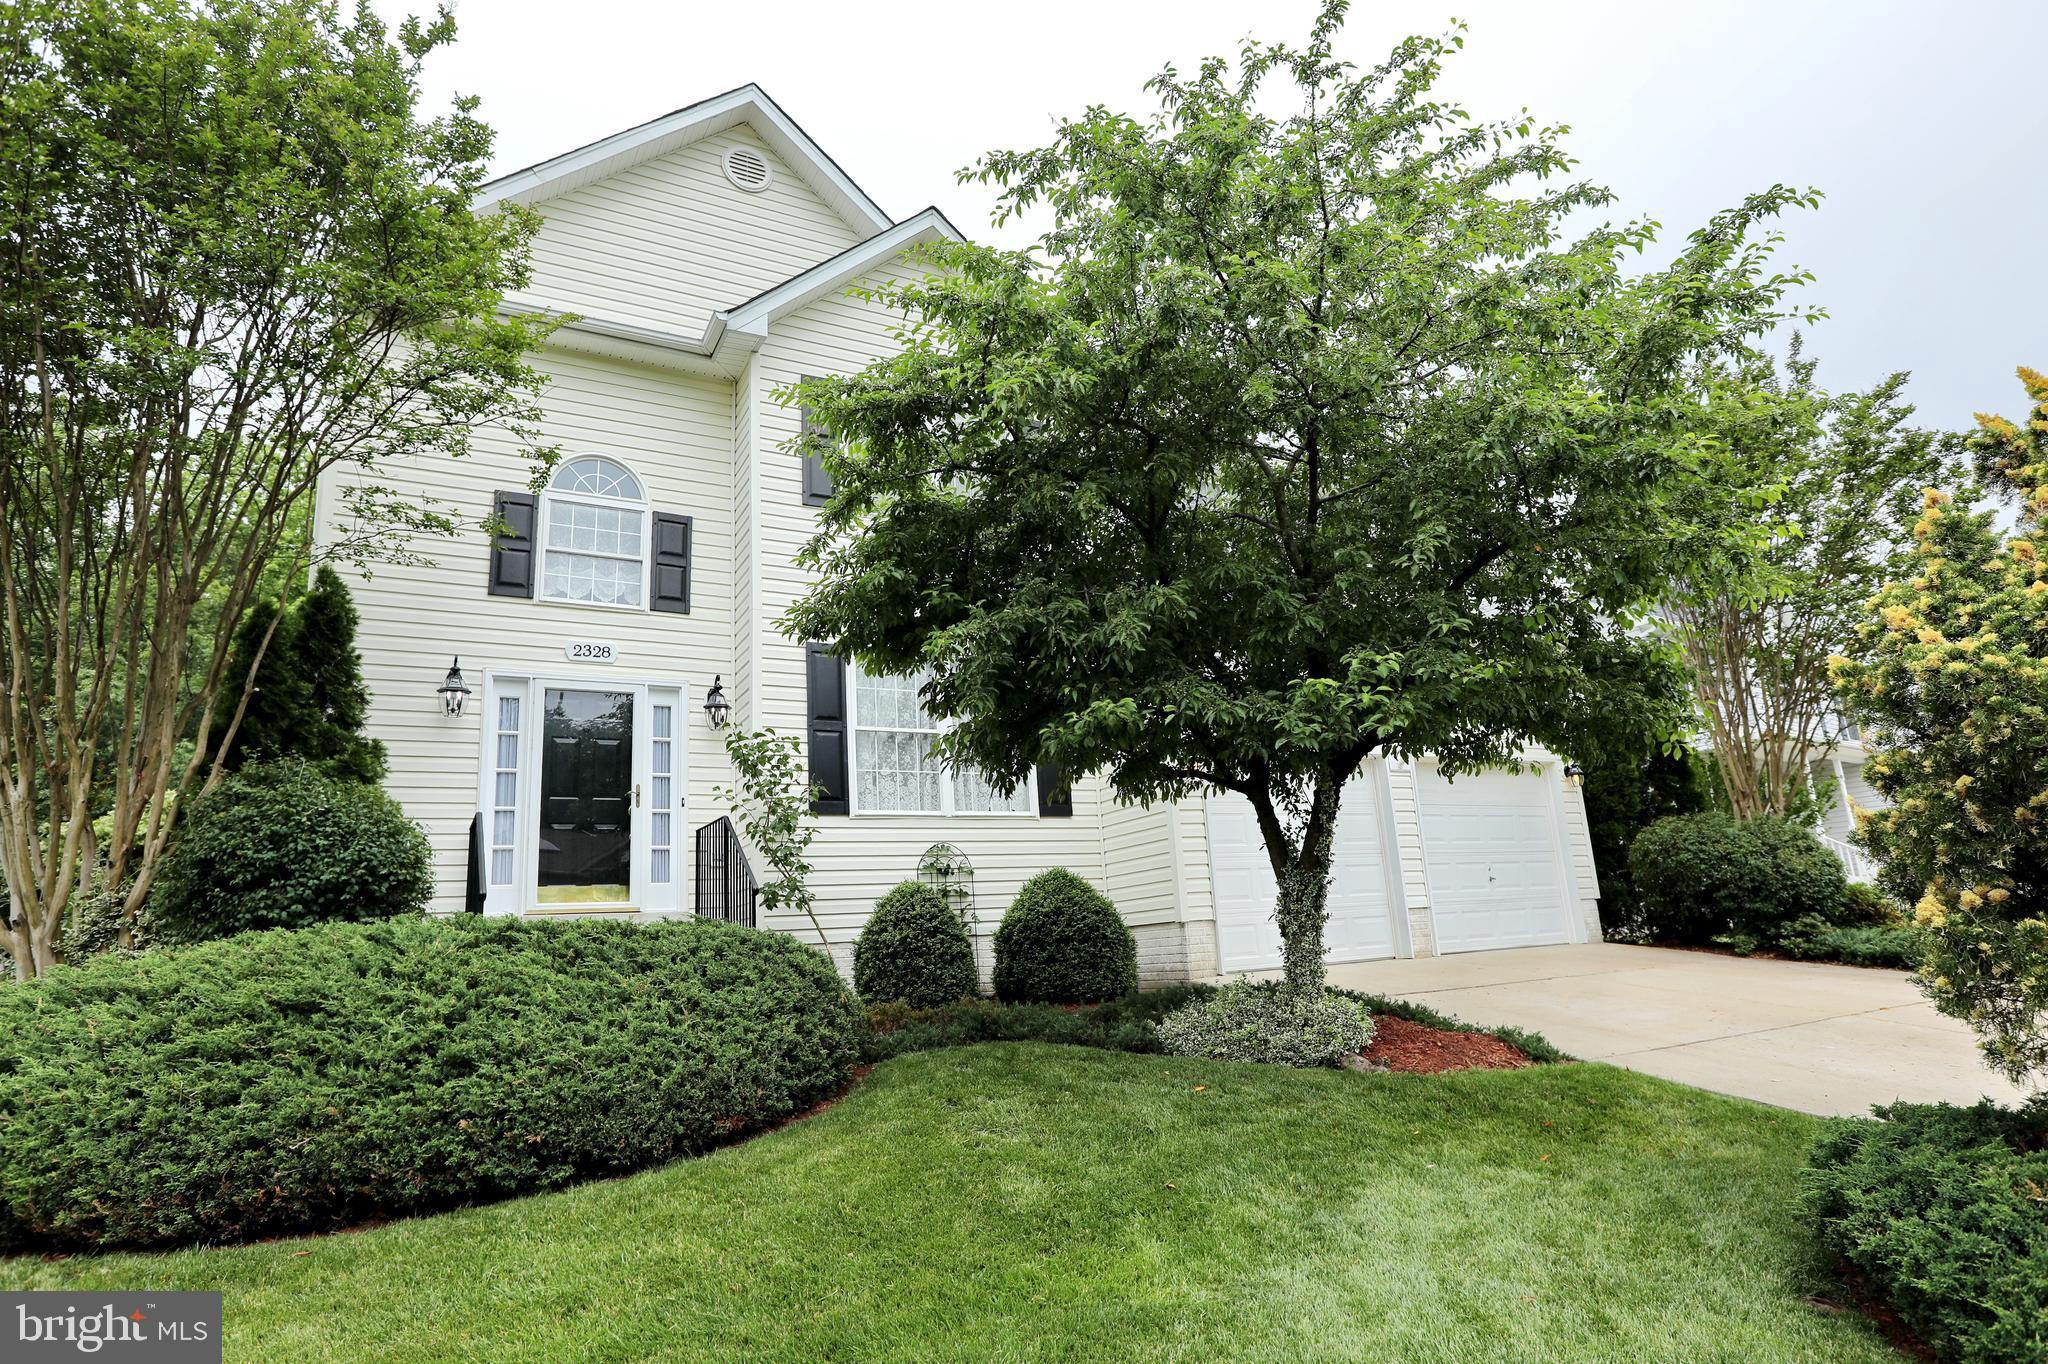 This beautiful three-level Colonial, located in the desirable Ashford Oaks neighborhood, offers 2,42